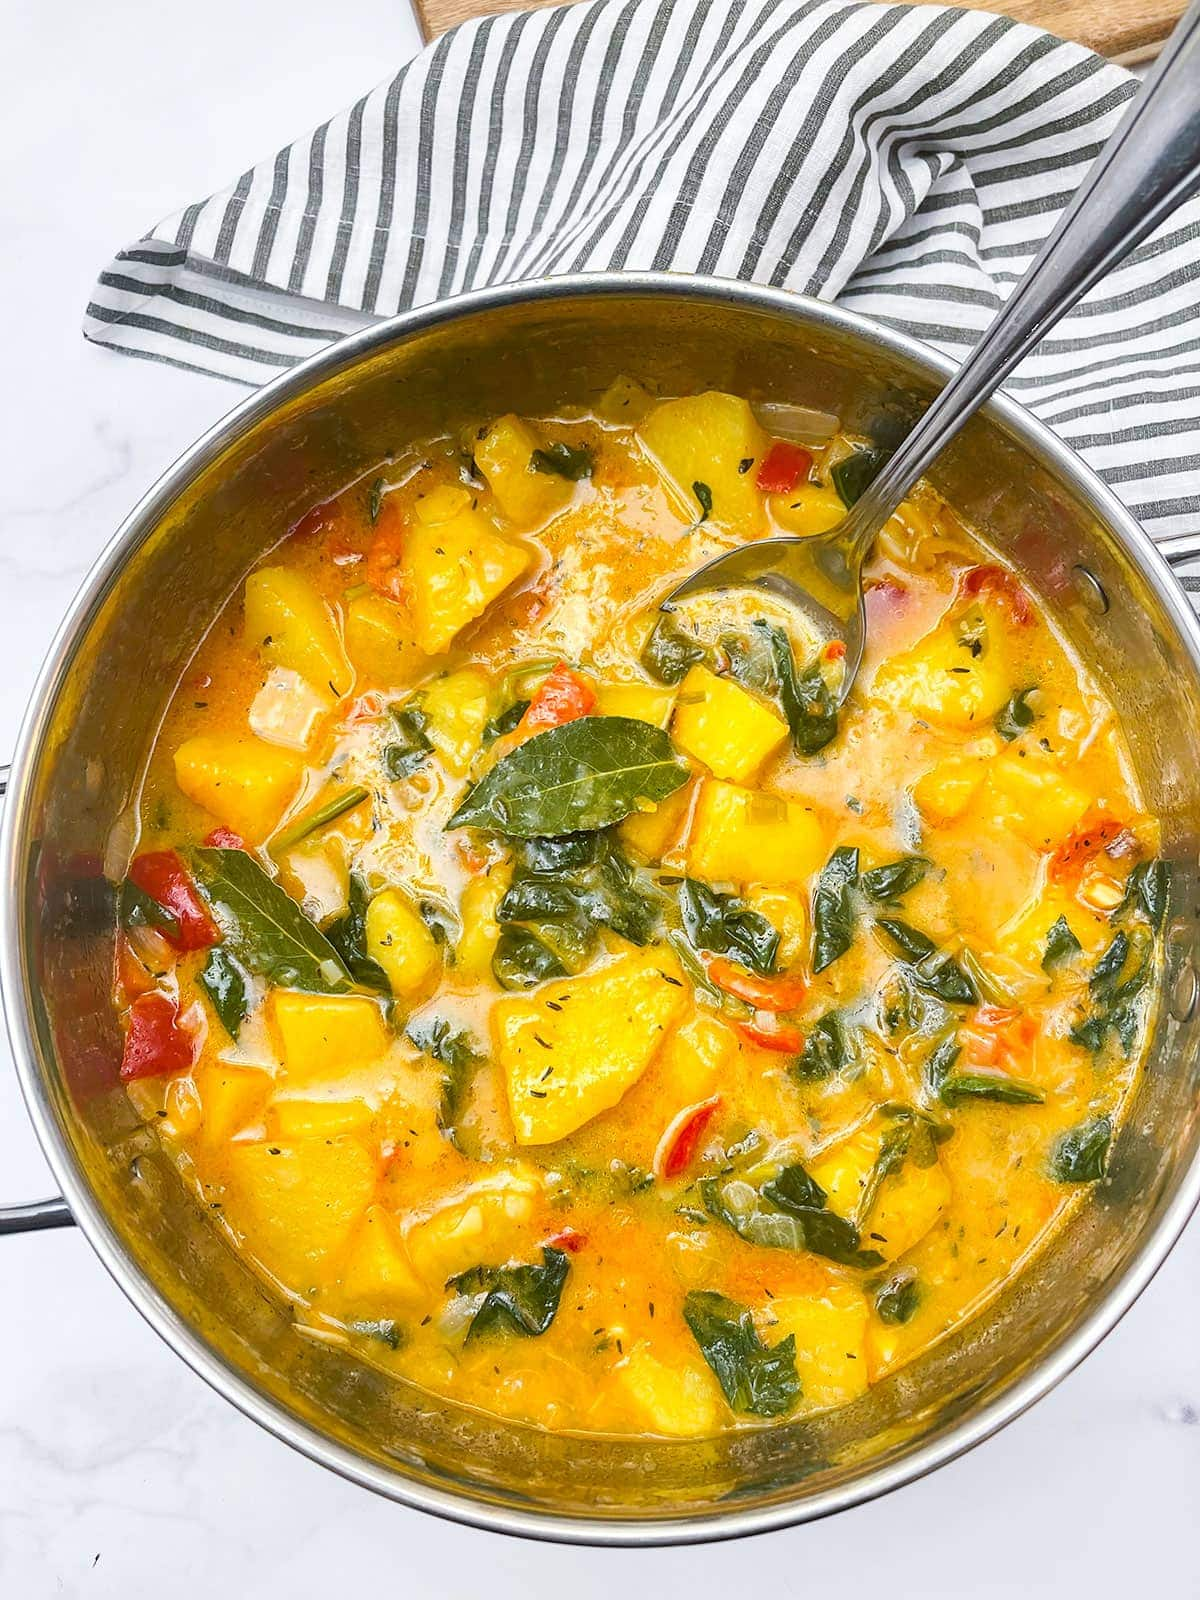 yellow yam stew in a saucepan on a white background with black and white stripe napkin